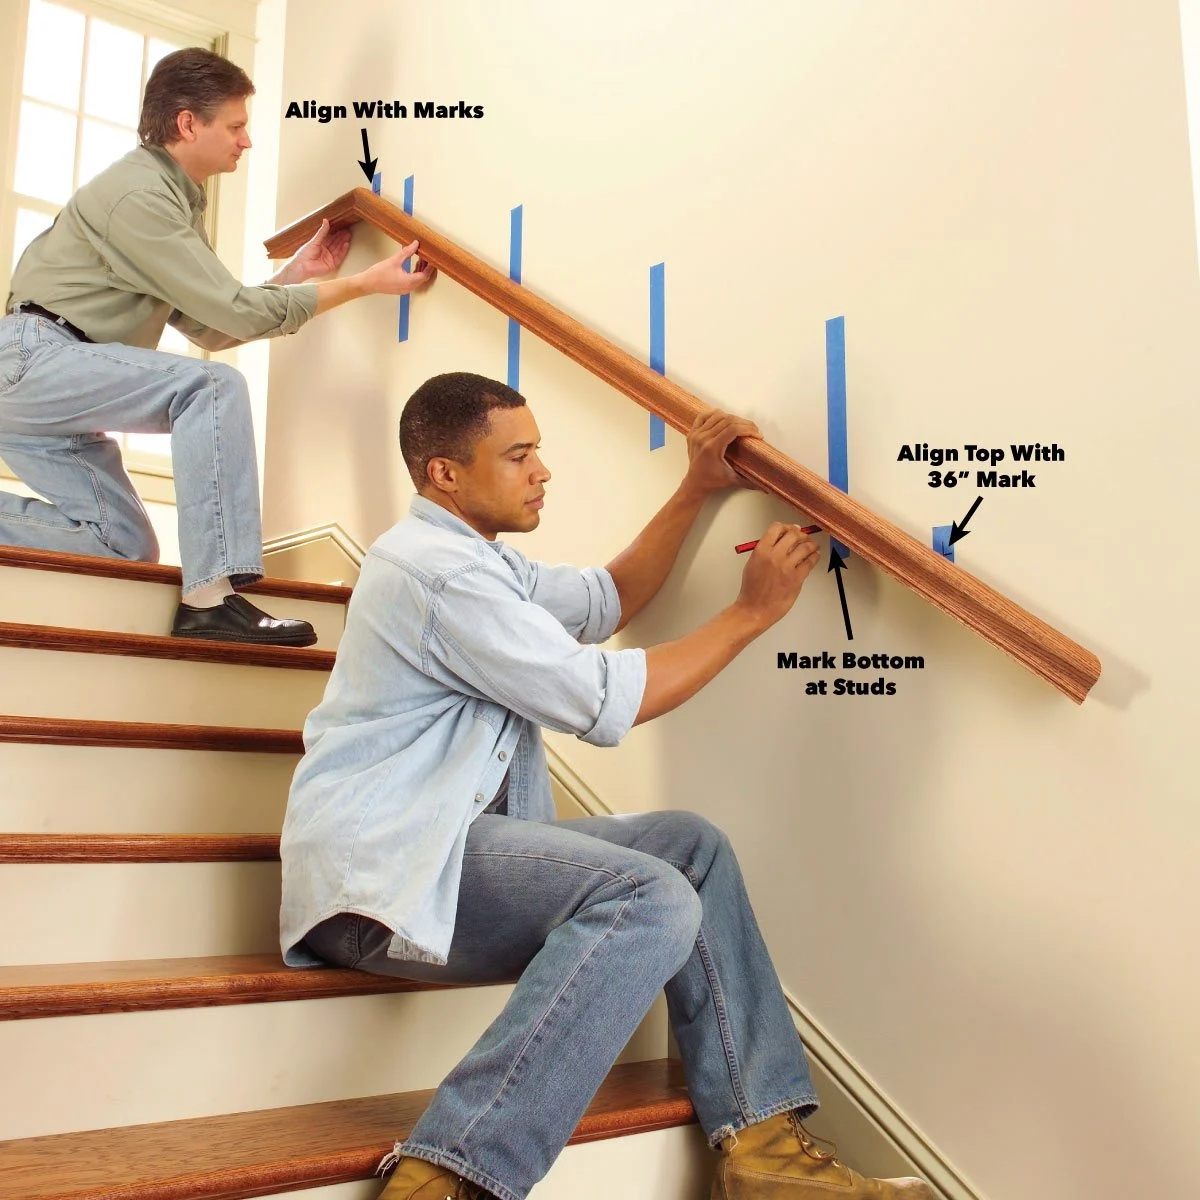 Install A New Stair Handrail   Wall Mounted Handrail For Stairs   Stair Interior   Brushed Nickel   Thin Glass   Attached Wall   Mounting